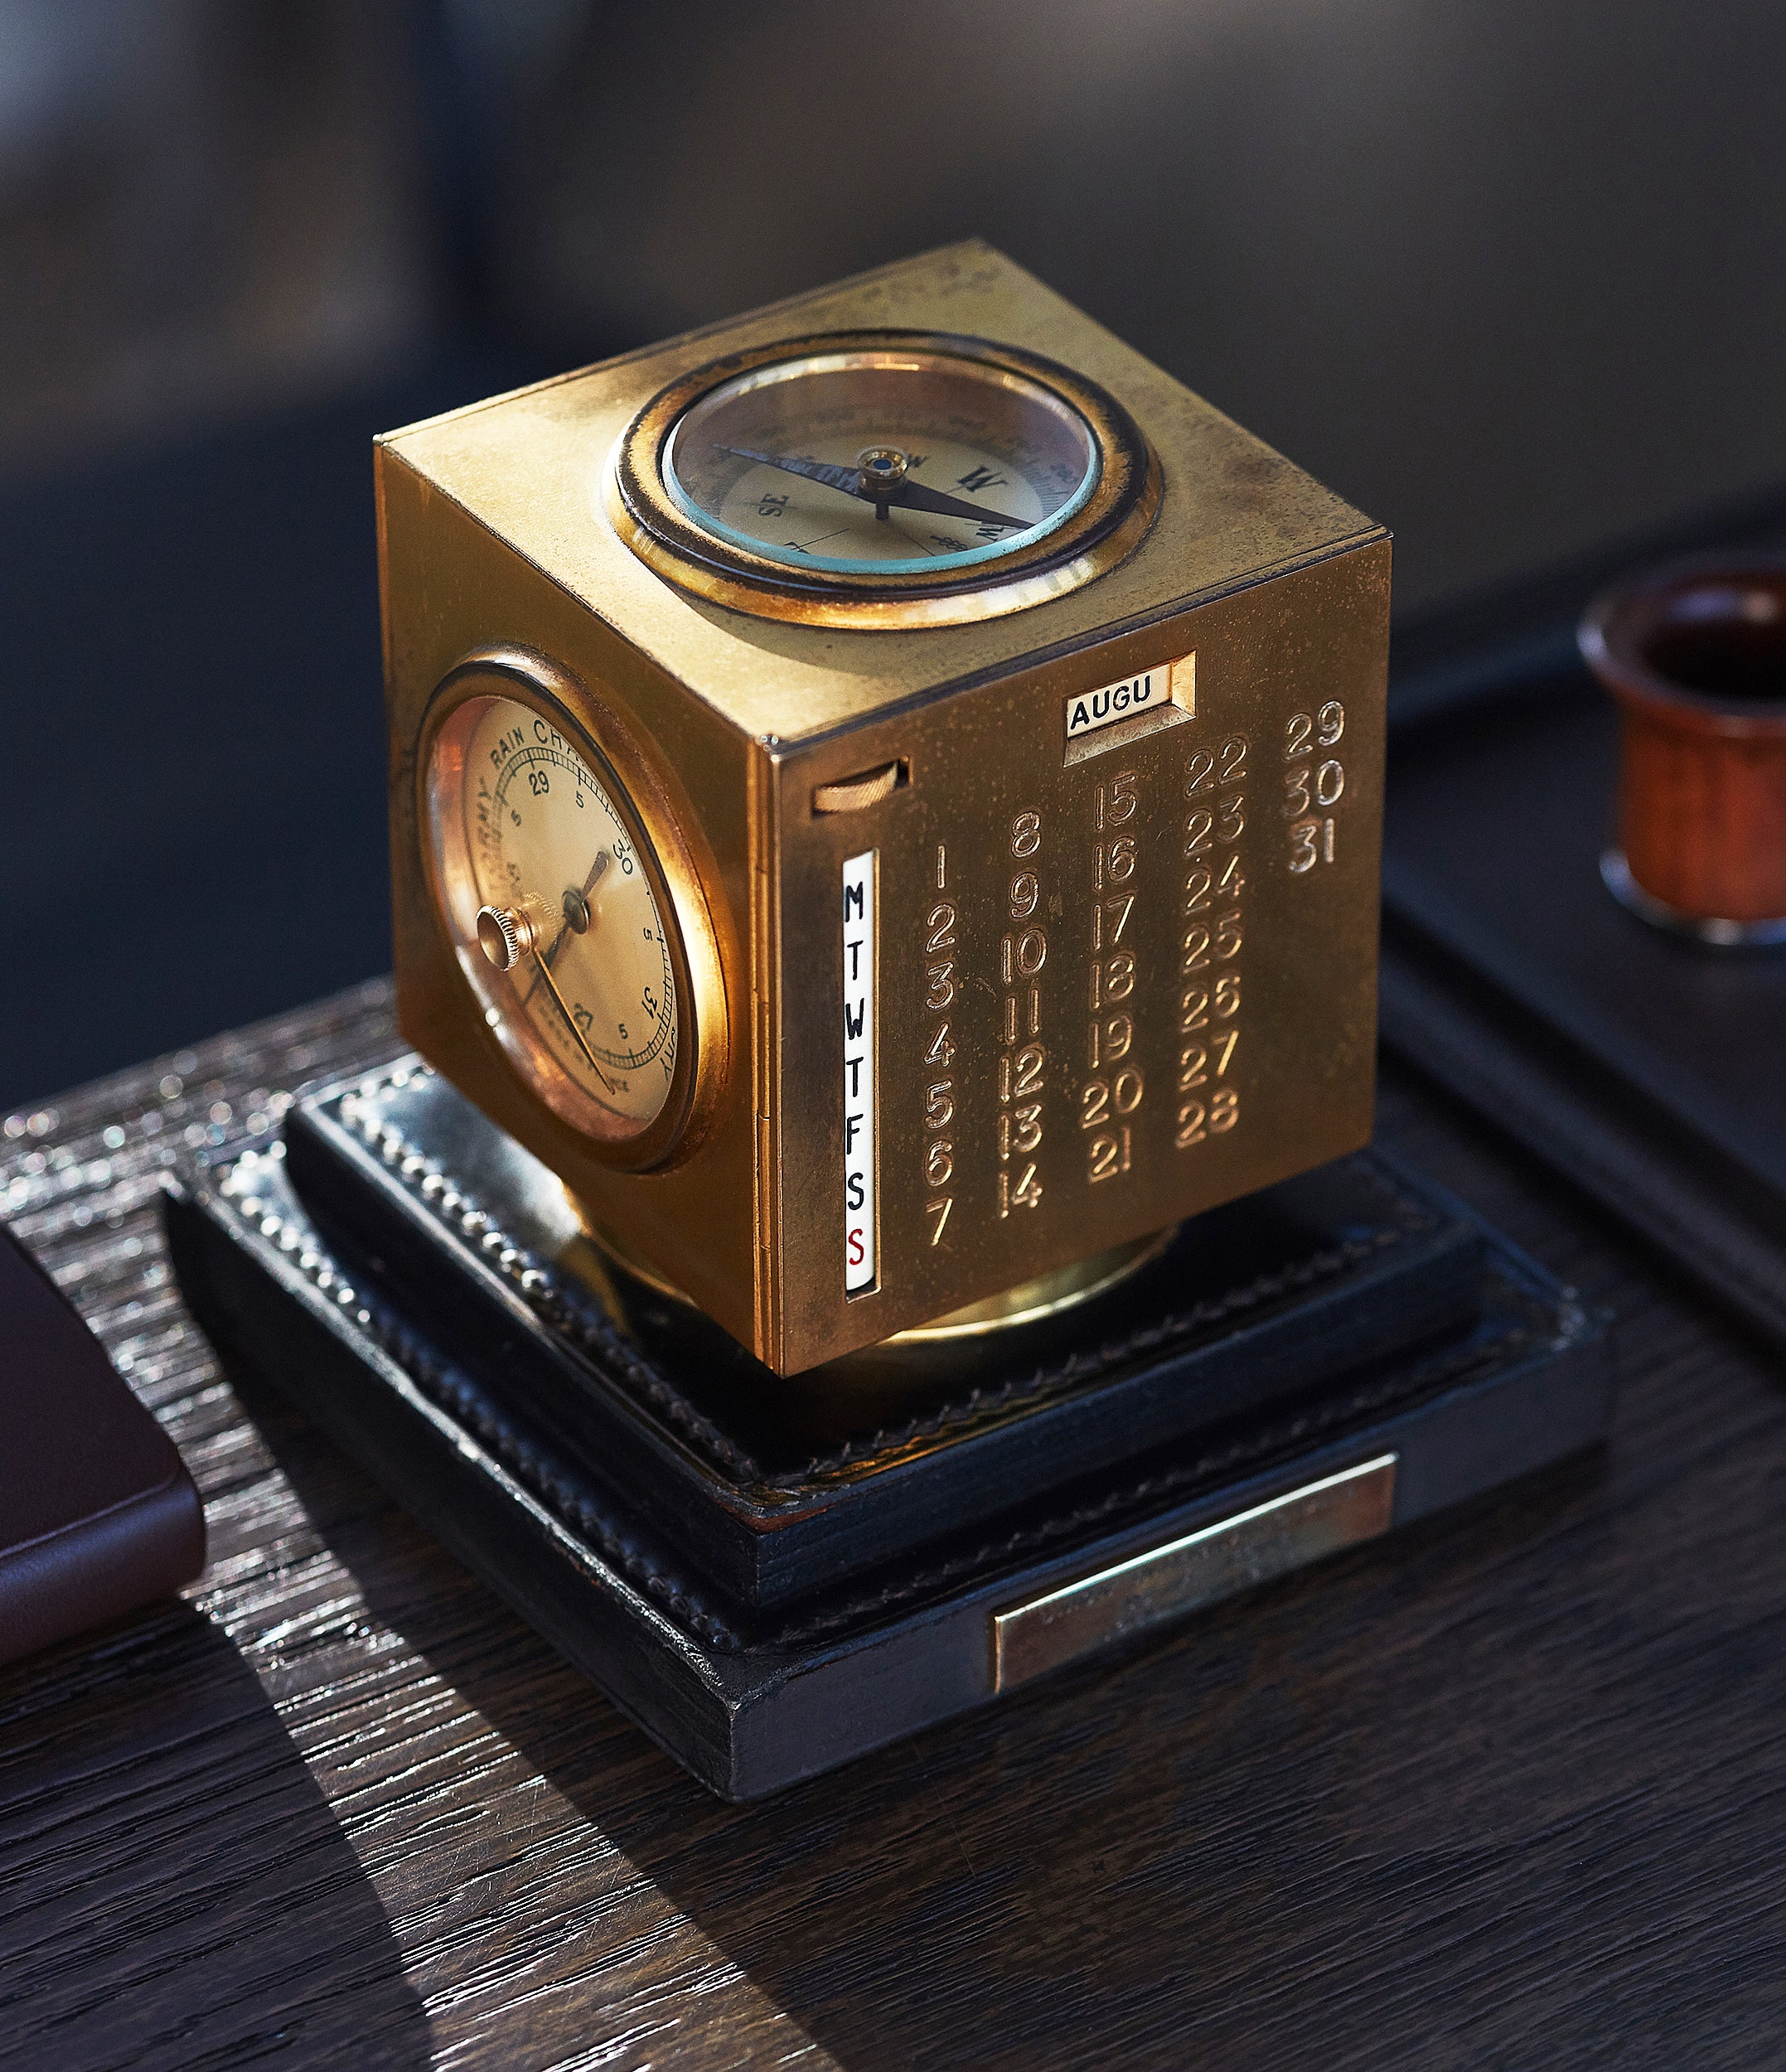 Art Deco Hermes Paris Compendium 8-day brass calendar desk clock for sale online at A Collected Man for collectors of rare objects